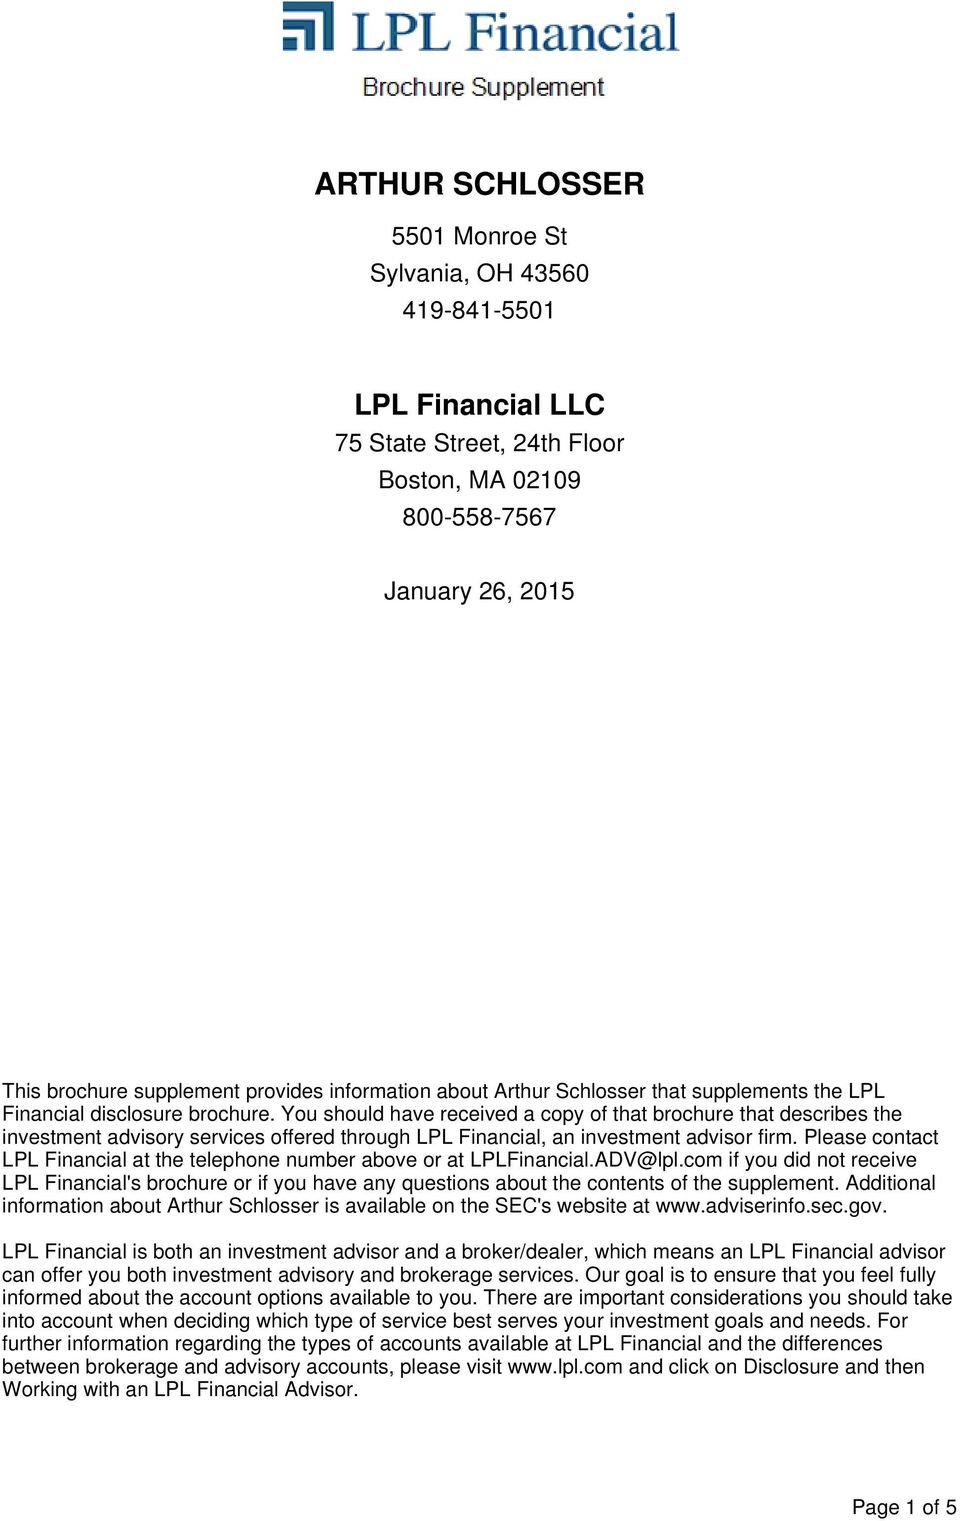 You should have received a copy of that brochure that describes the investment advisory services offered through LPL Financial, an investment advisor firm.